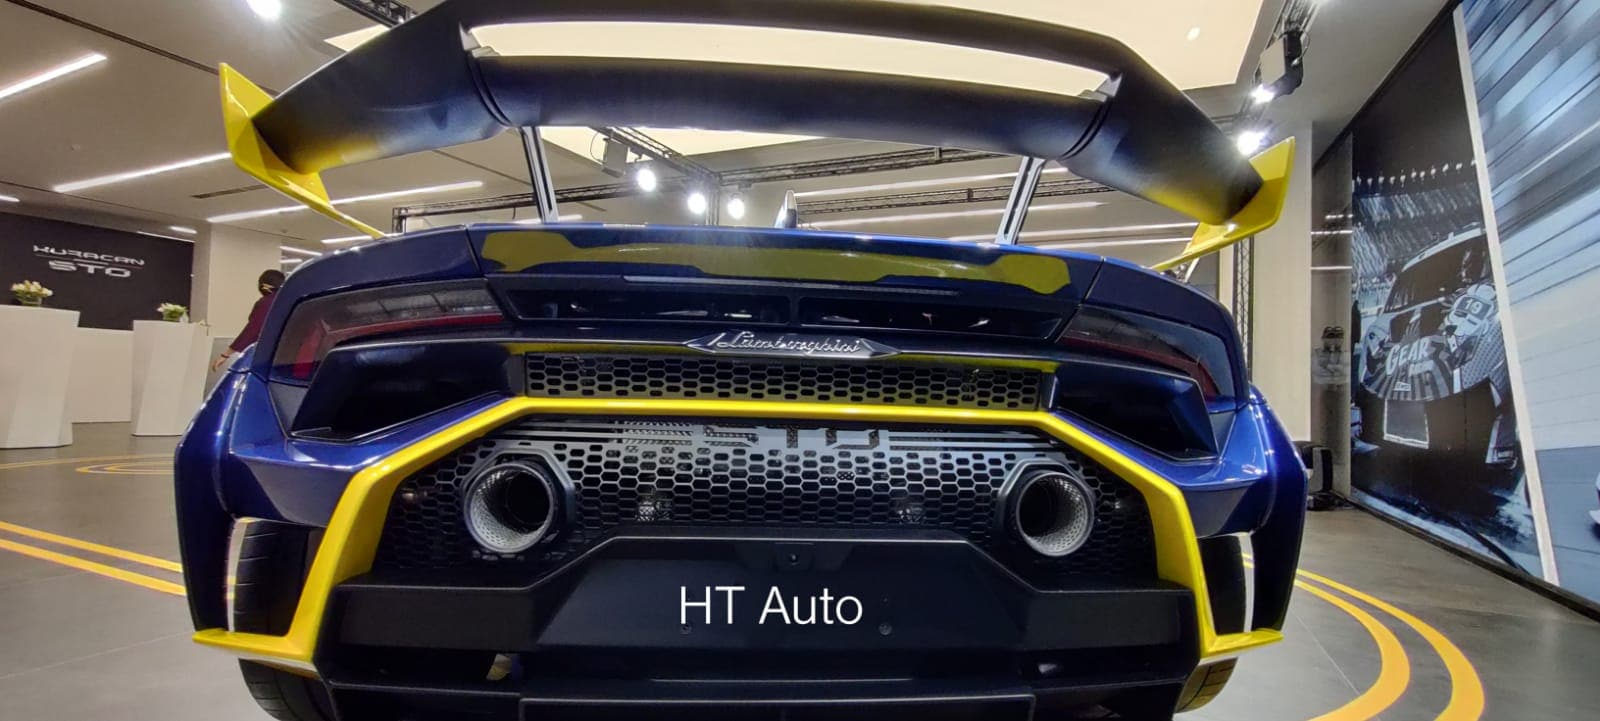 The rear fender of the Lamborghini Huracan STO has been derived from the Super Trofeo EVO and helps to also bring down drag while increasing rear downforce and the STO's overall aerodynamic efficiency. The rear hood design sees an integrated air scoop to improve air-cooling at the rear underhood. (HT Auto)